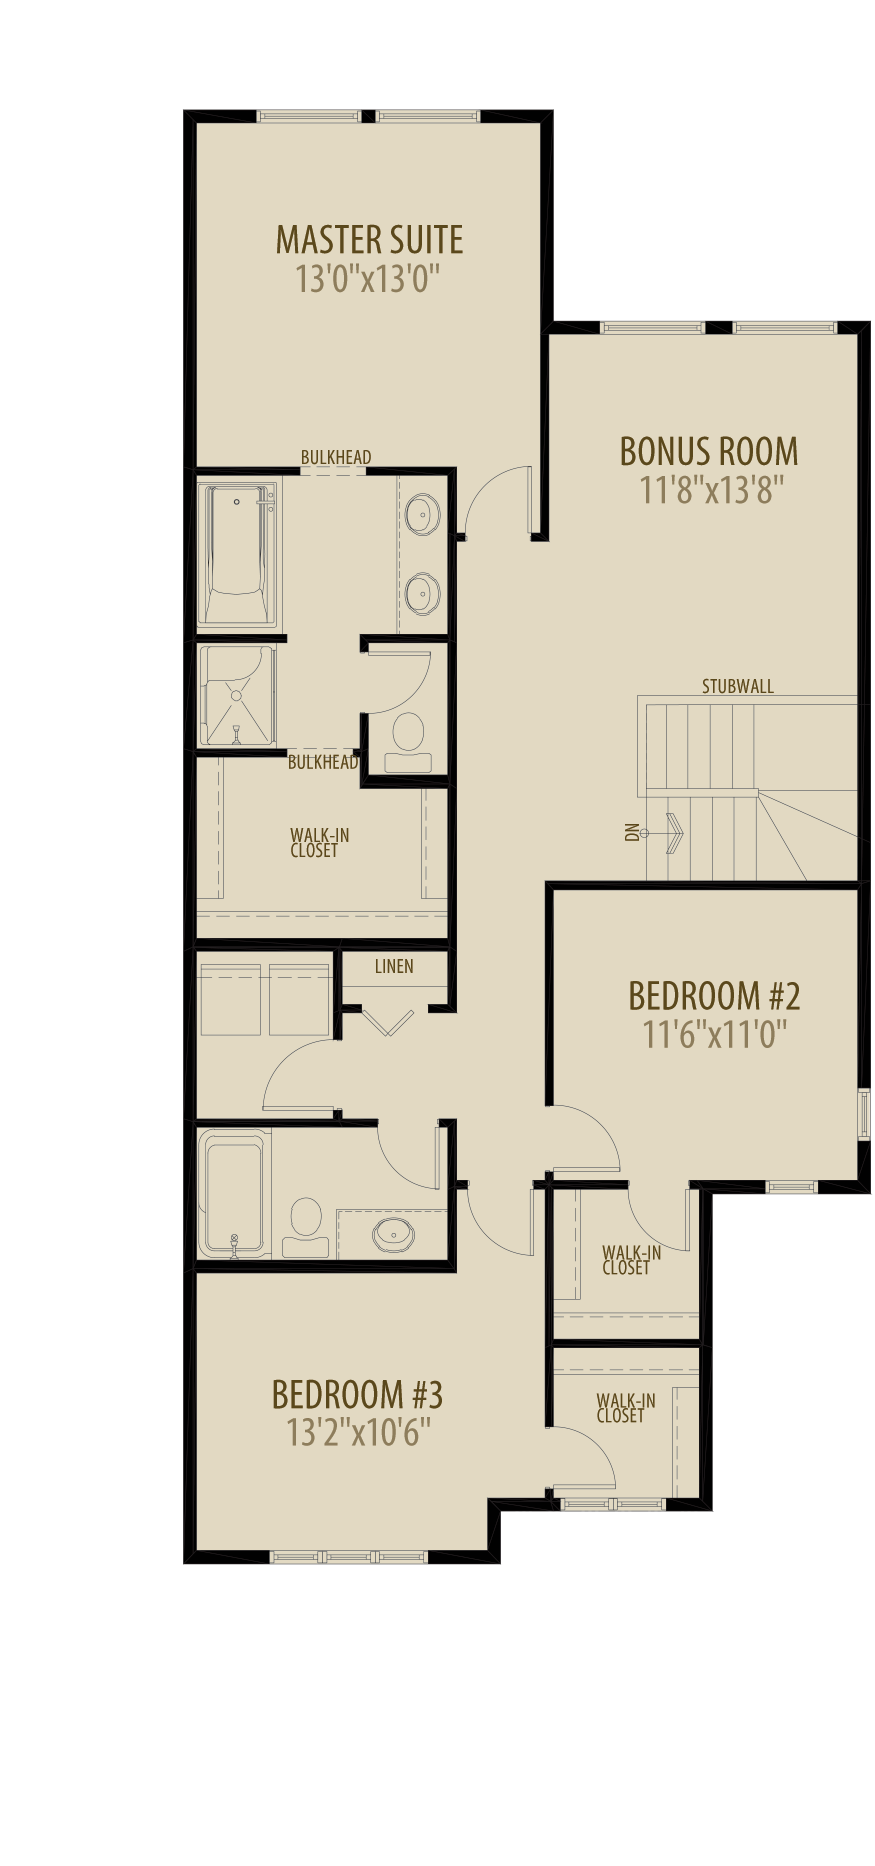 Expanded Bedroom Adds 52 sq ft